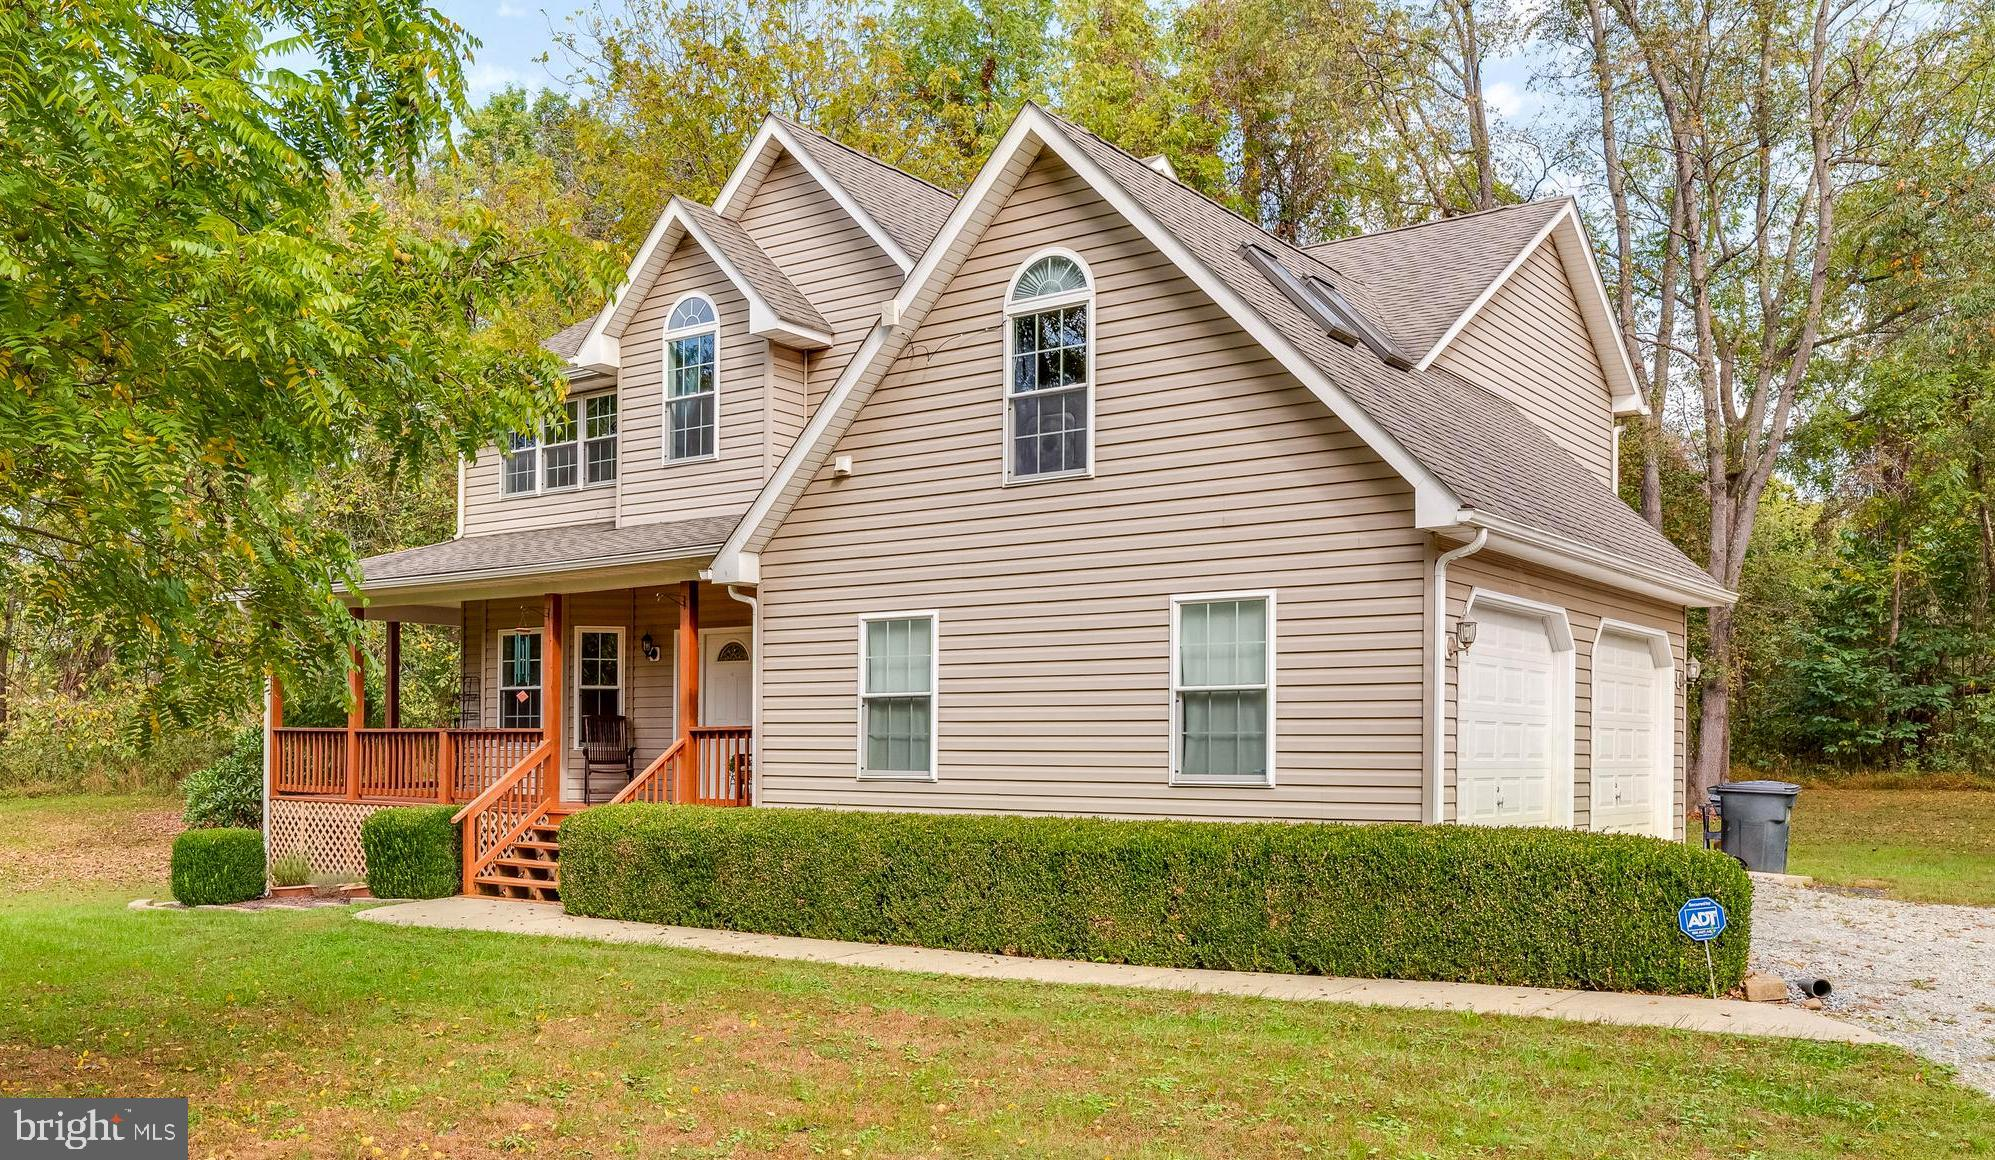 Stylish  custom colonial on 1.5 acre lot.   No HOA - bring the chickens and the RV! Property has bee